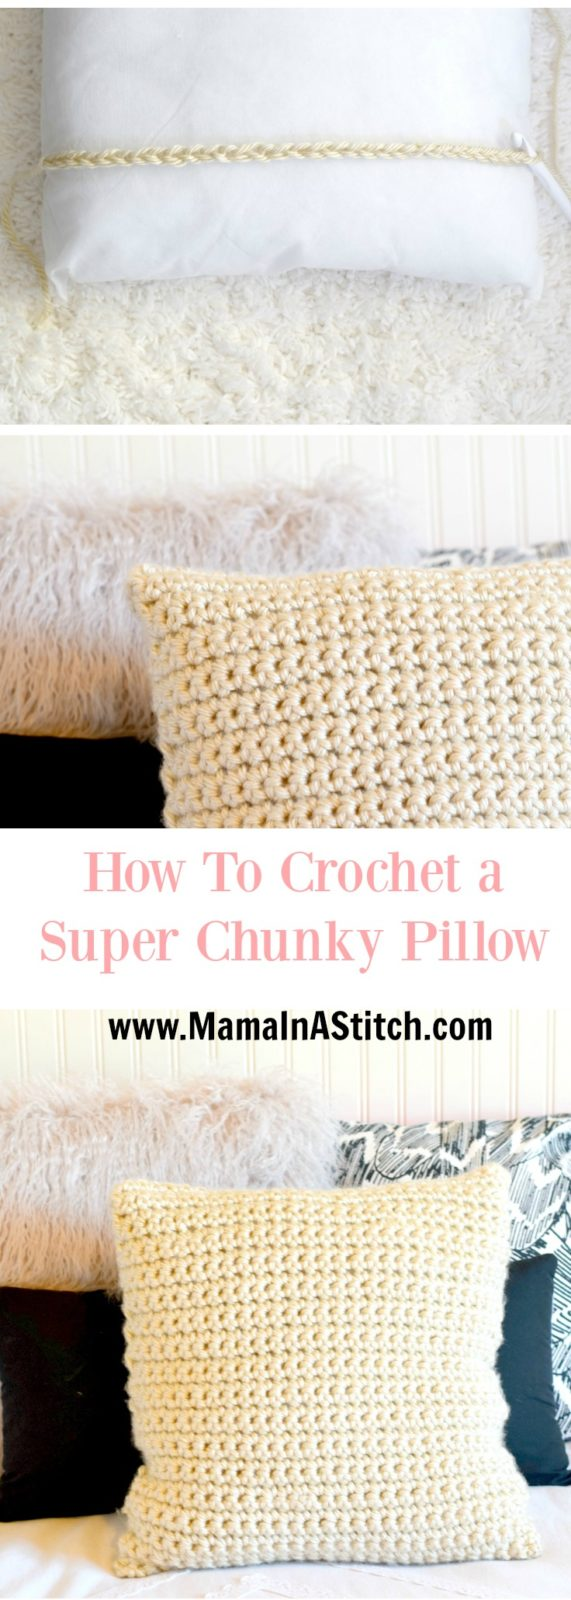 Super chunky crochet pillow project mama in a stitch crochet pillow pattern beginner easy bankloansurffo Gallery